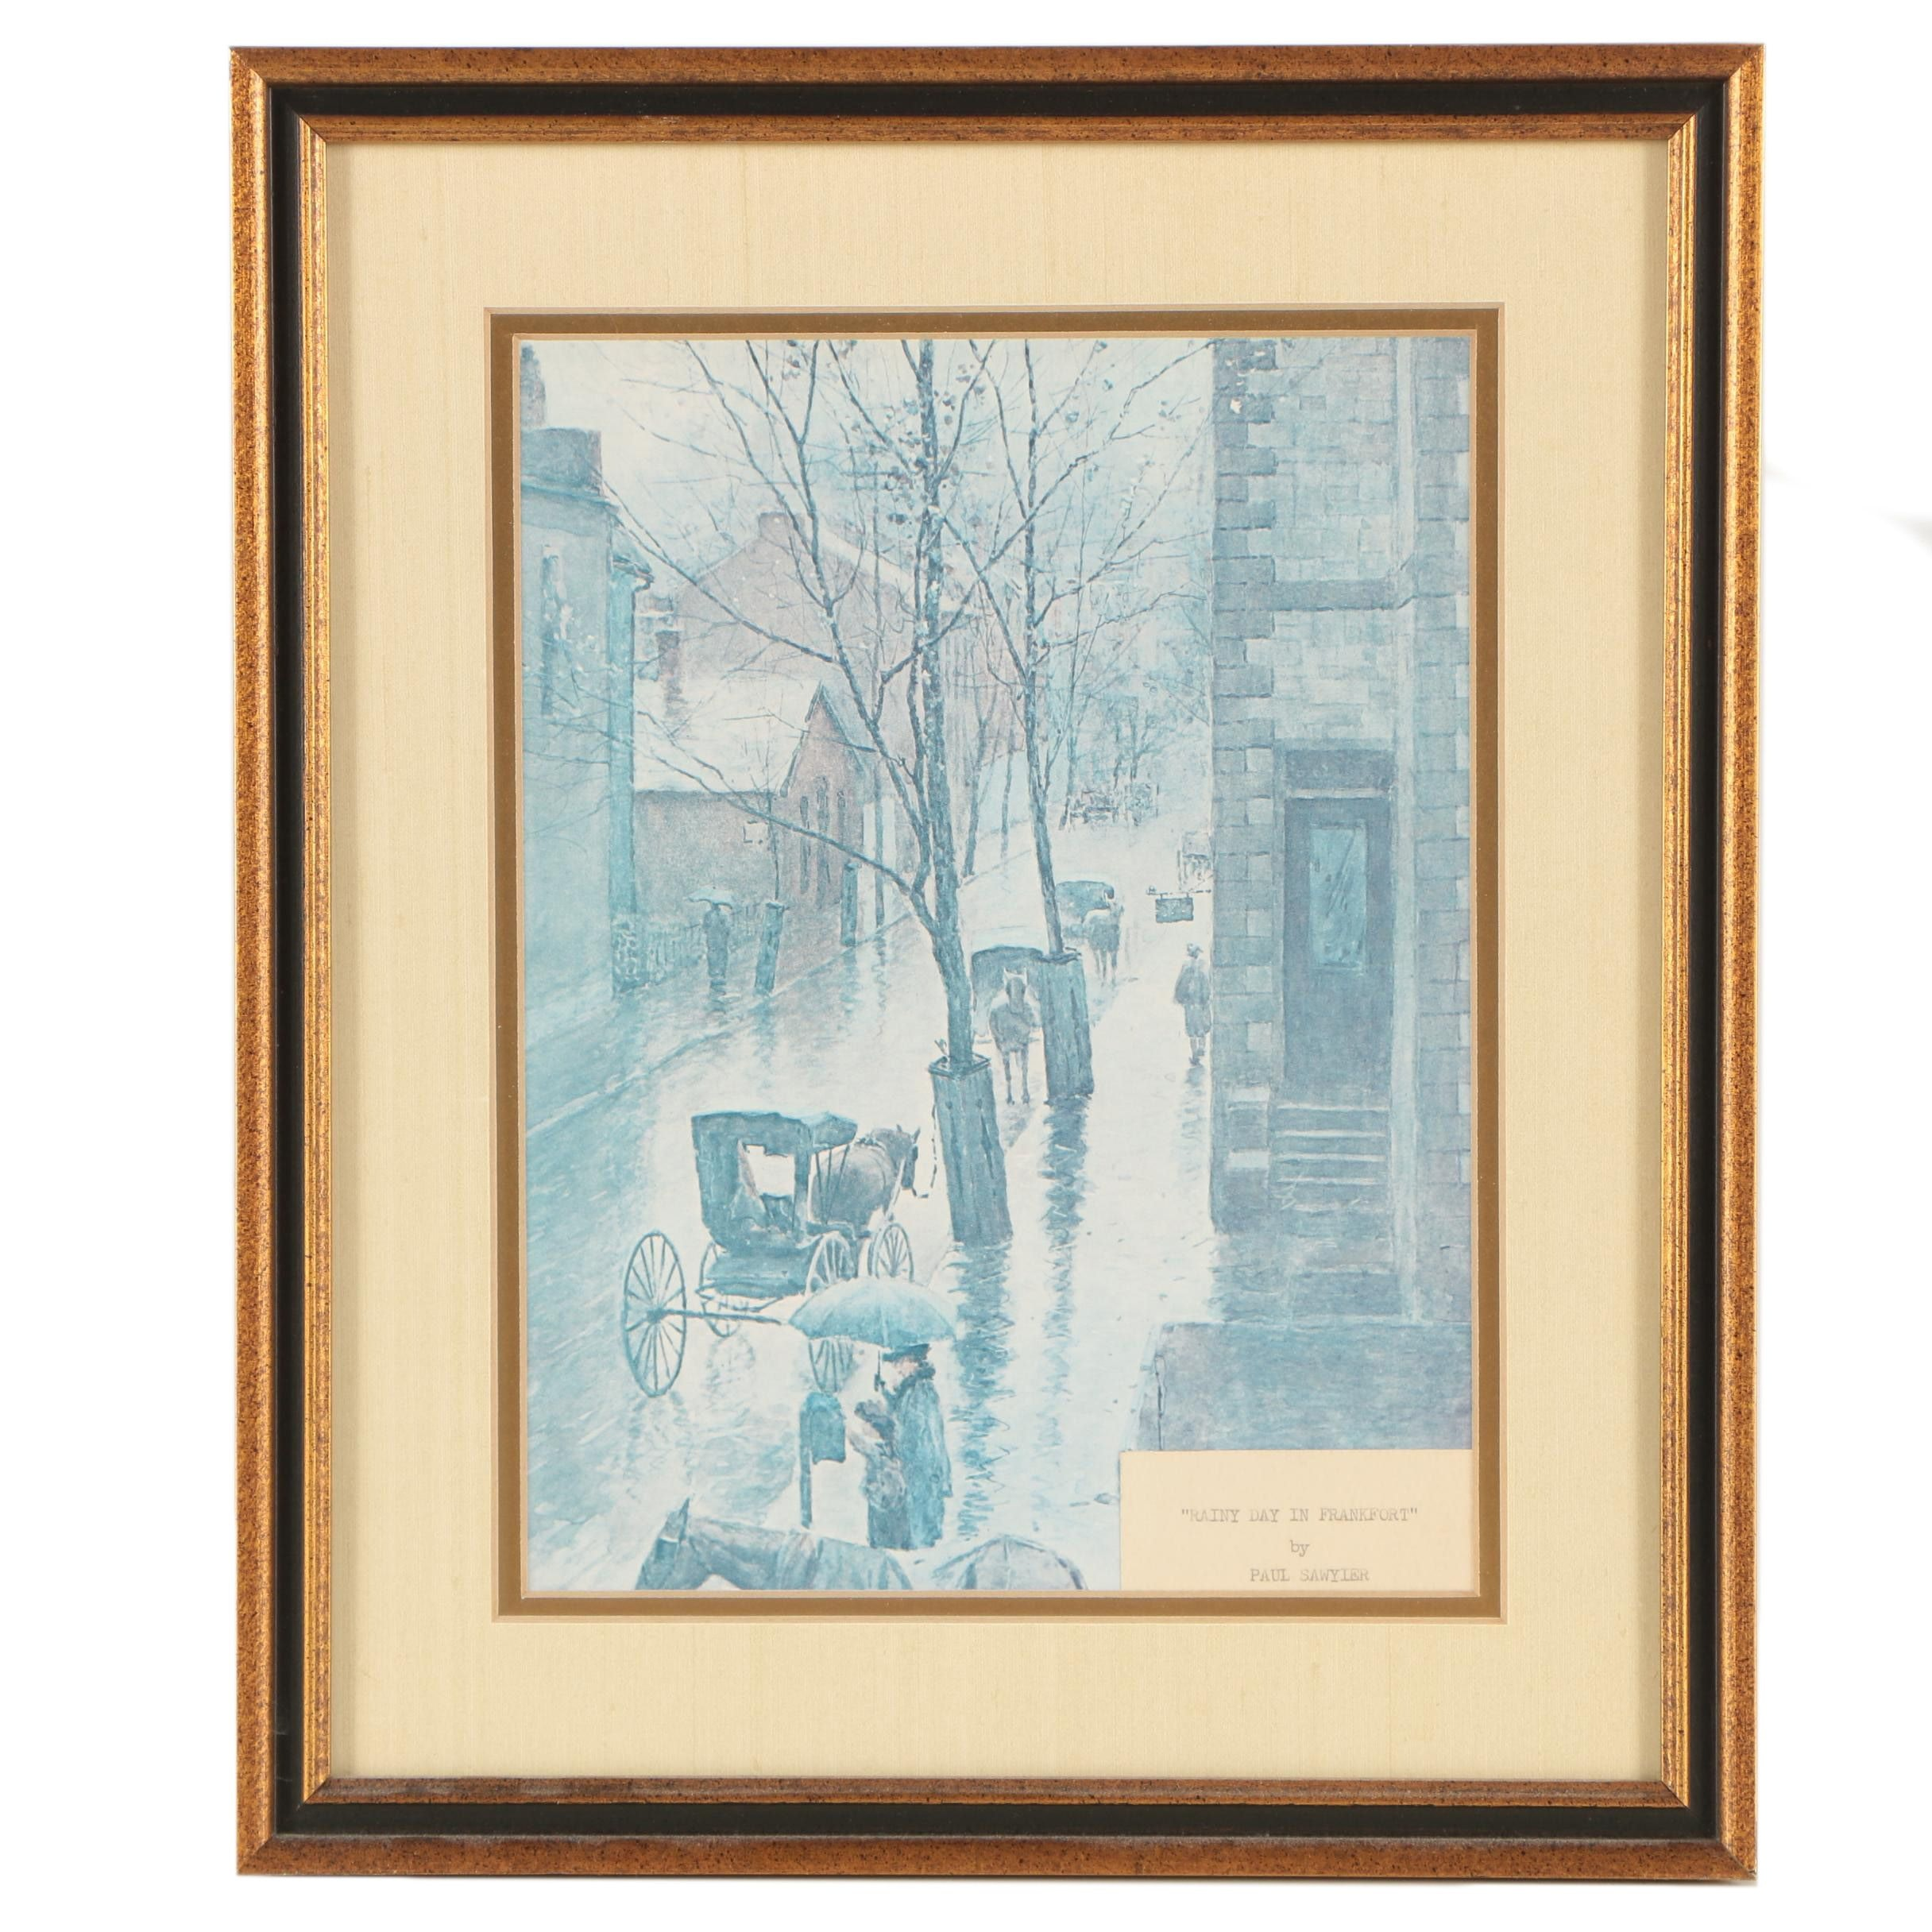 """Offset Lithograph After Paul Sawyier """"Rainy Day in Frankfort"""""""